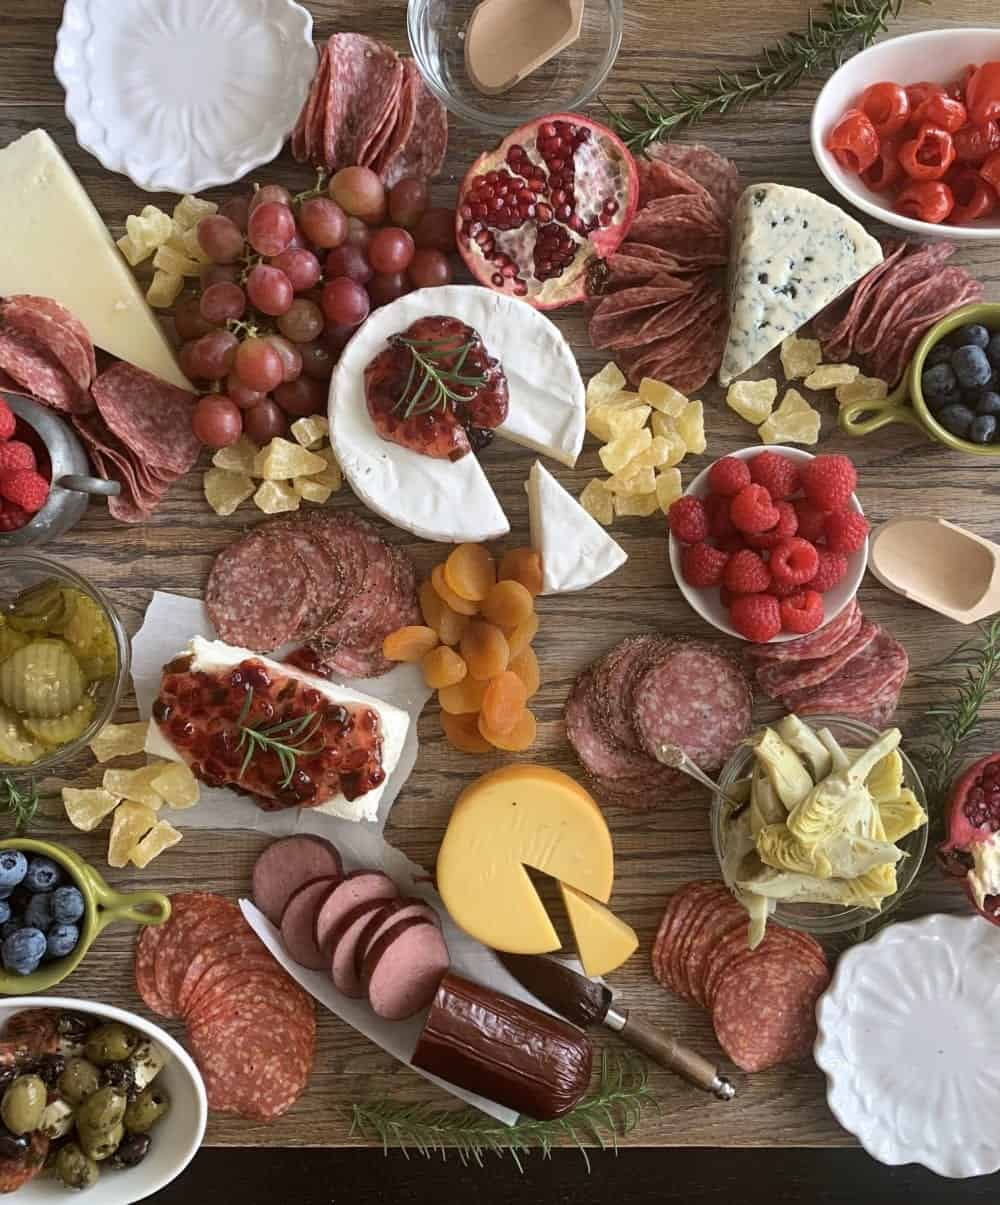 dried fruits added to charcuterie board